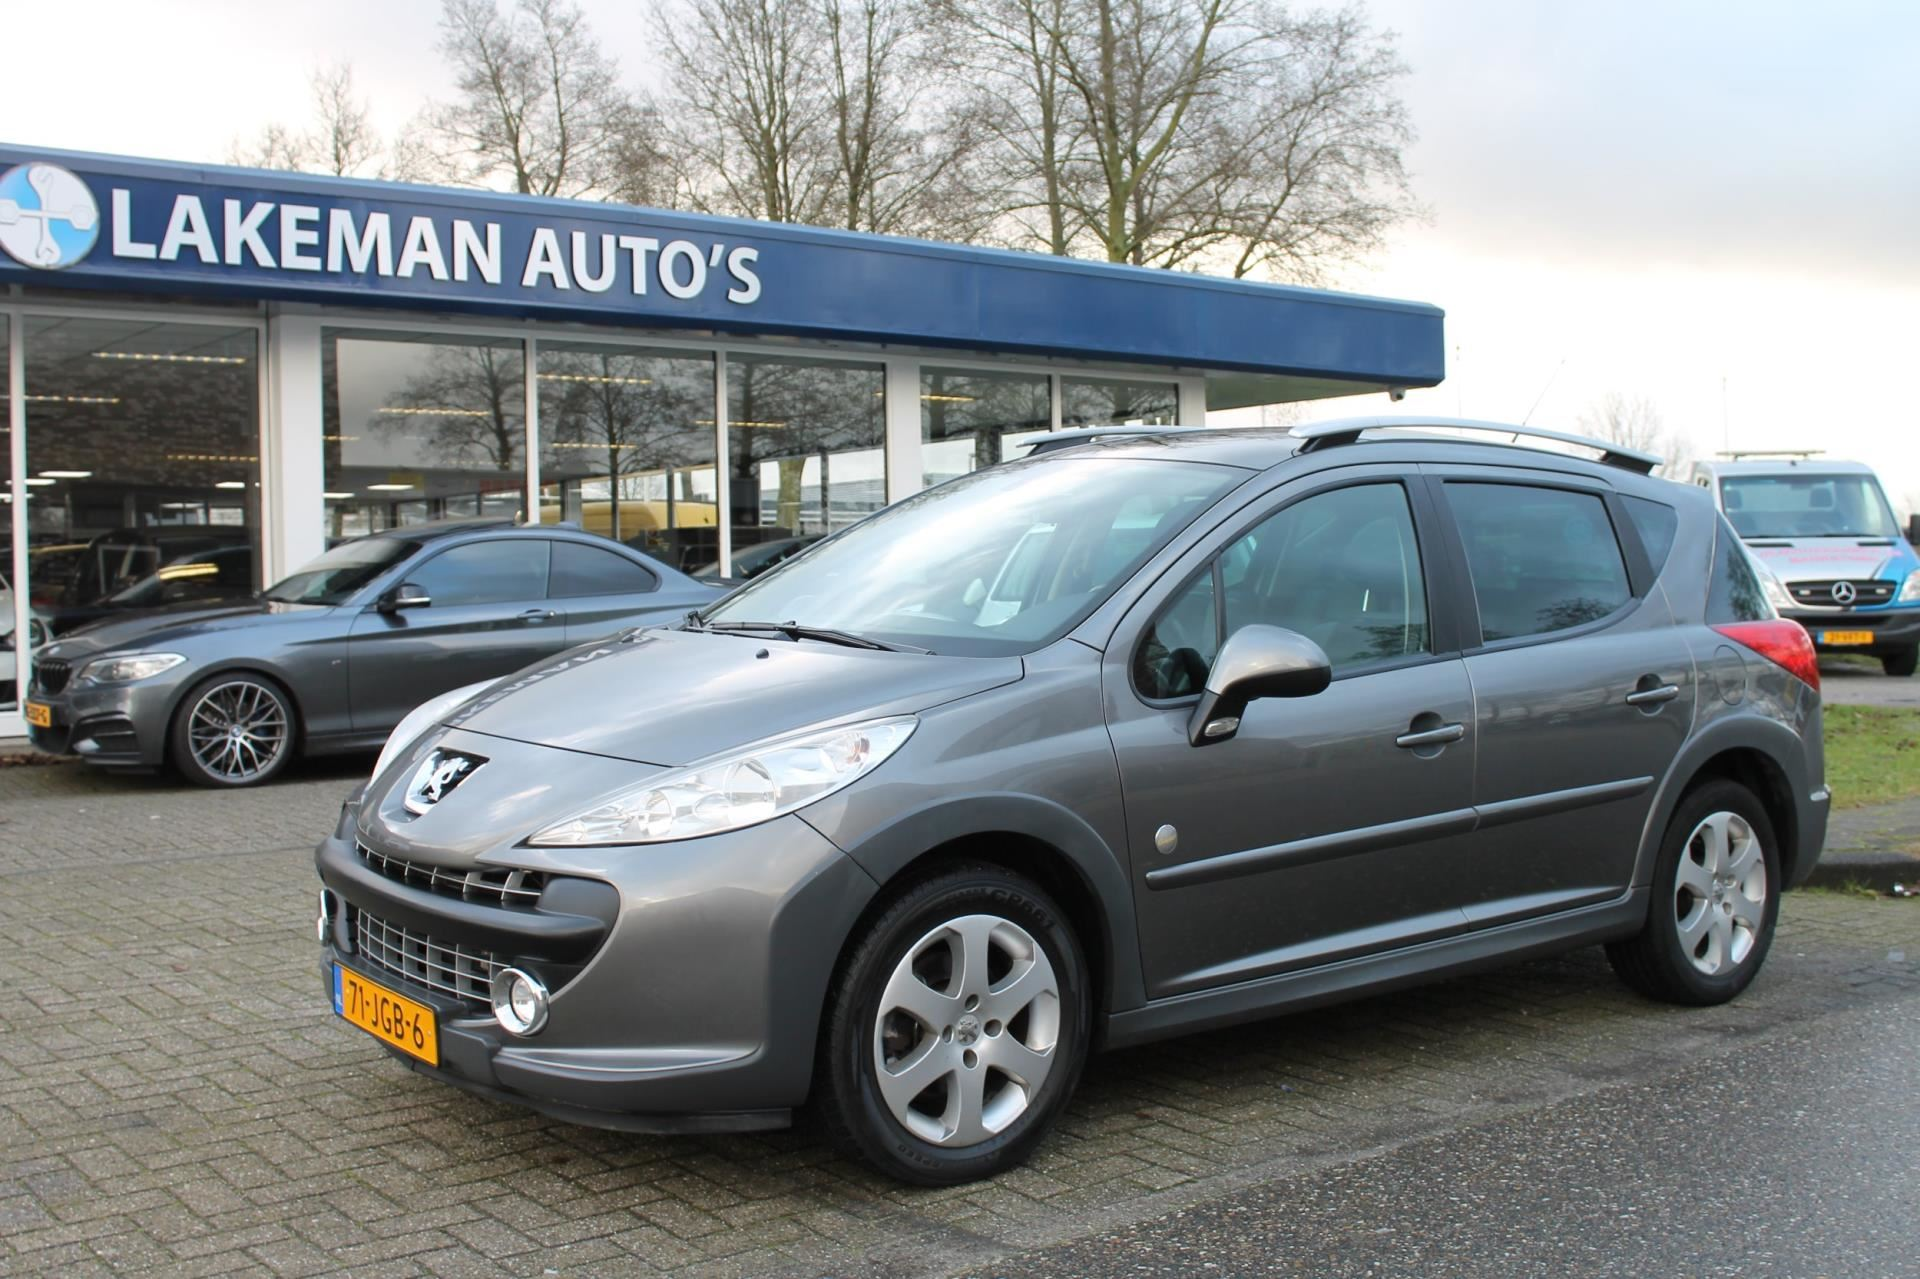 Peugeot 207 SW Outdoor occasion - Lakeman auto's Almere B.V.